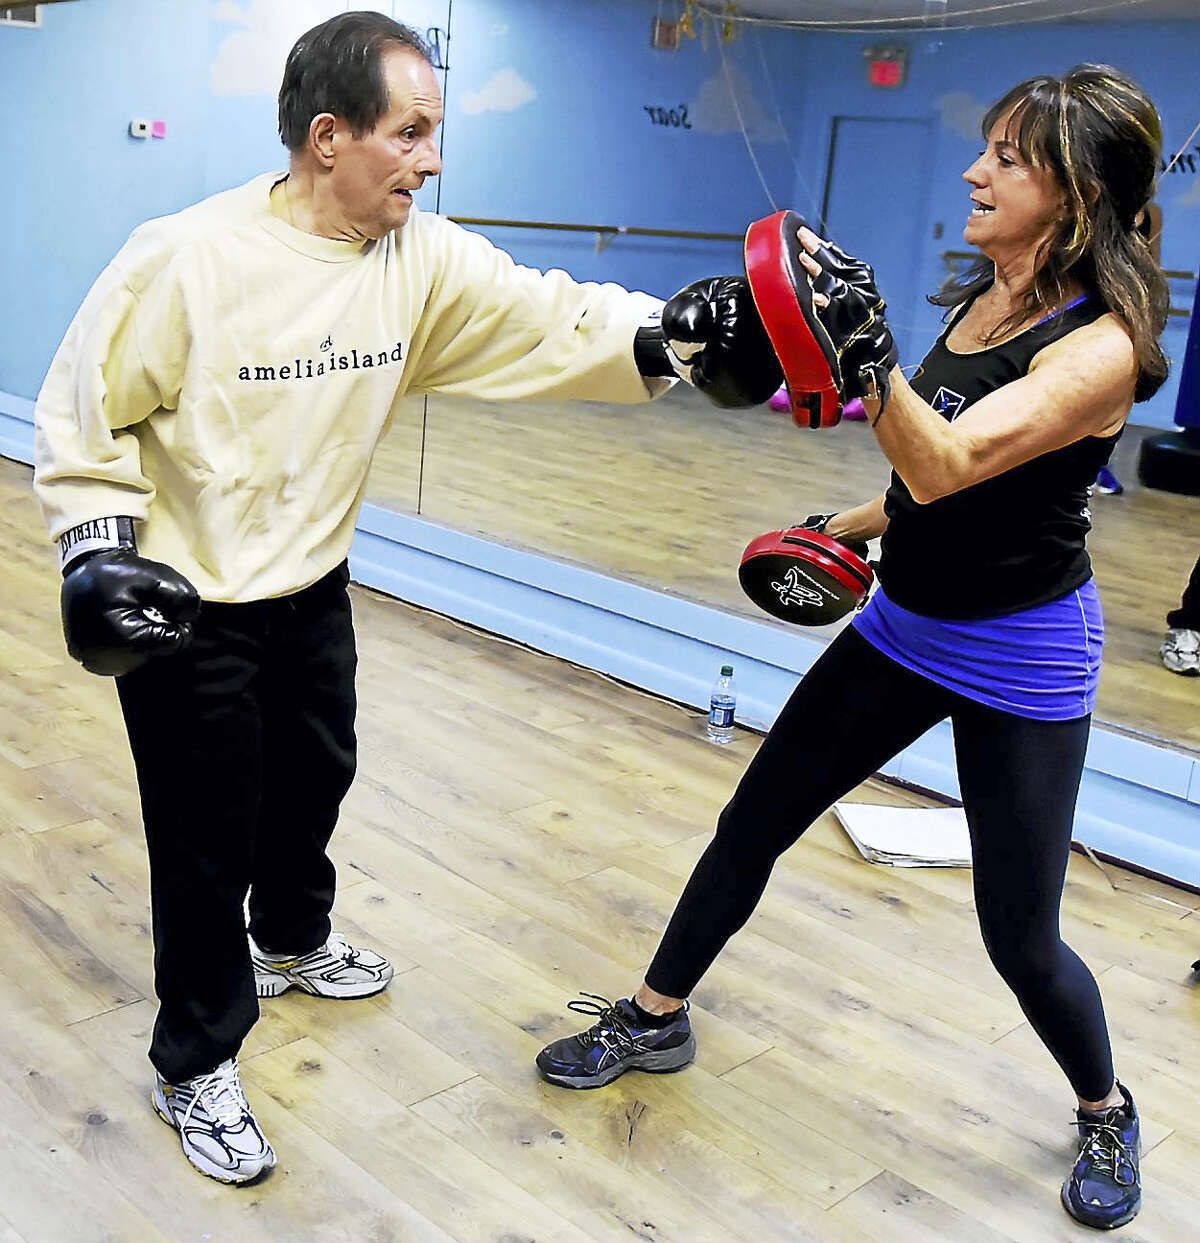 (Peter Hvizdak - New Haven Register) Fred Annunziata of Branford, left, trains with Terry O'Hara, Director of Personnel and Personal Trainer of Beat Parkinson's Today during a Beat Parkinson's Today boxing class at Studio One in Branford Wednesday, February 1, 2017. The class is for all ages and stages of the disease. The boxing helps ease the physical symptoms of Parkinson's using functional interval training techniques.